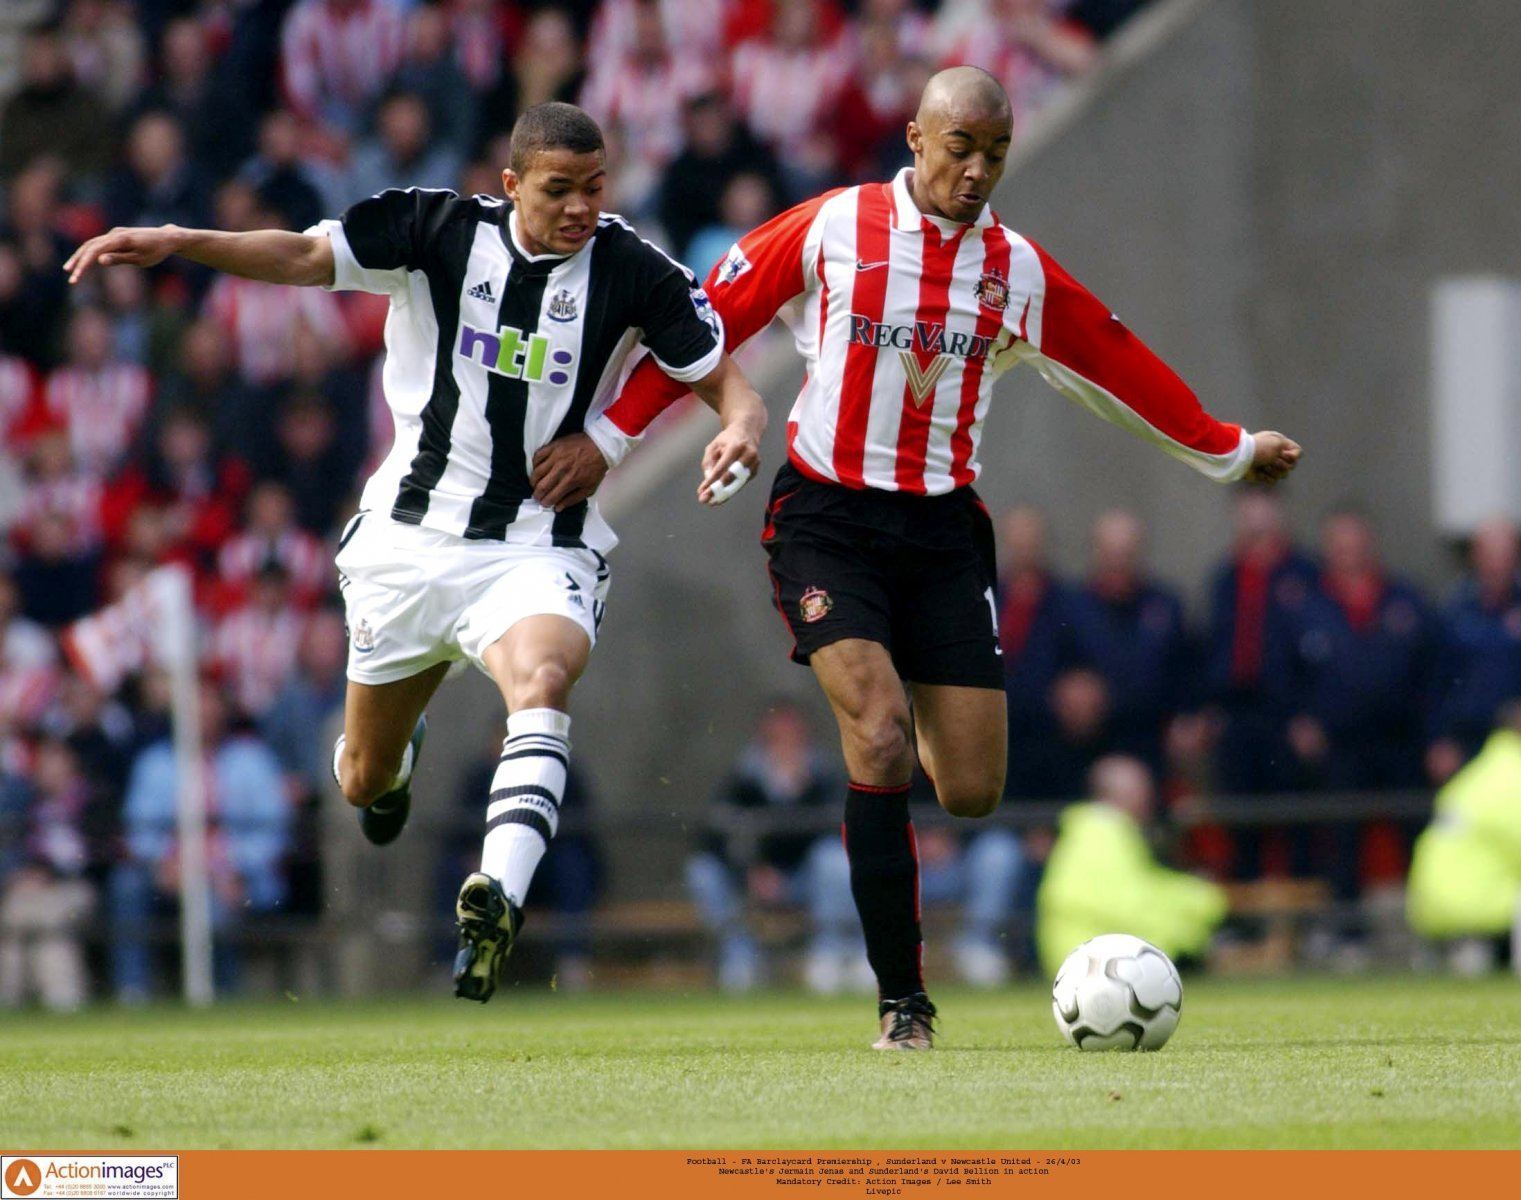 Transfers that ruined careers: David Bellion to Manchester United